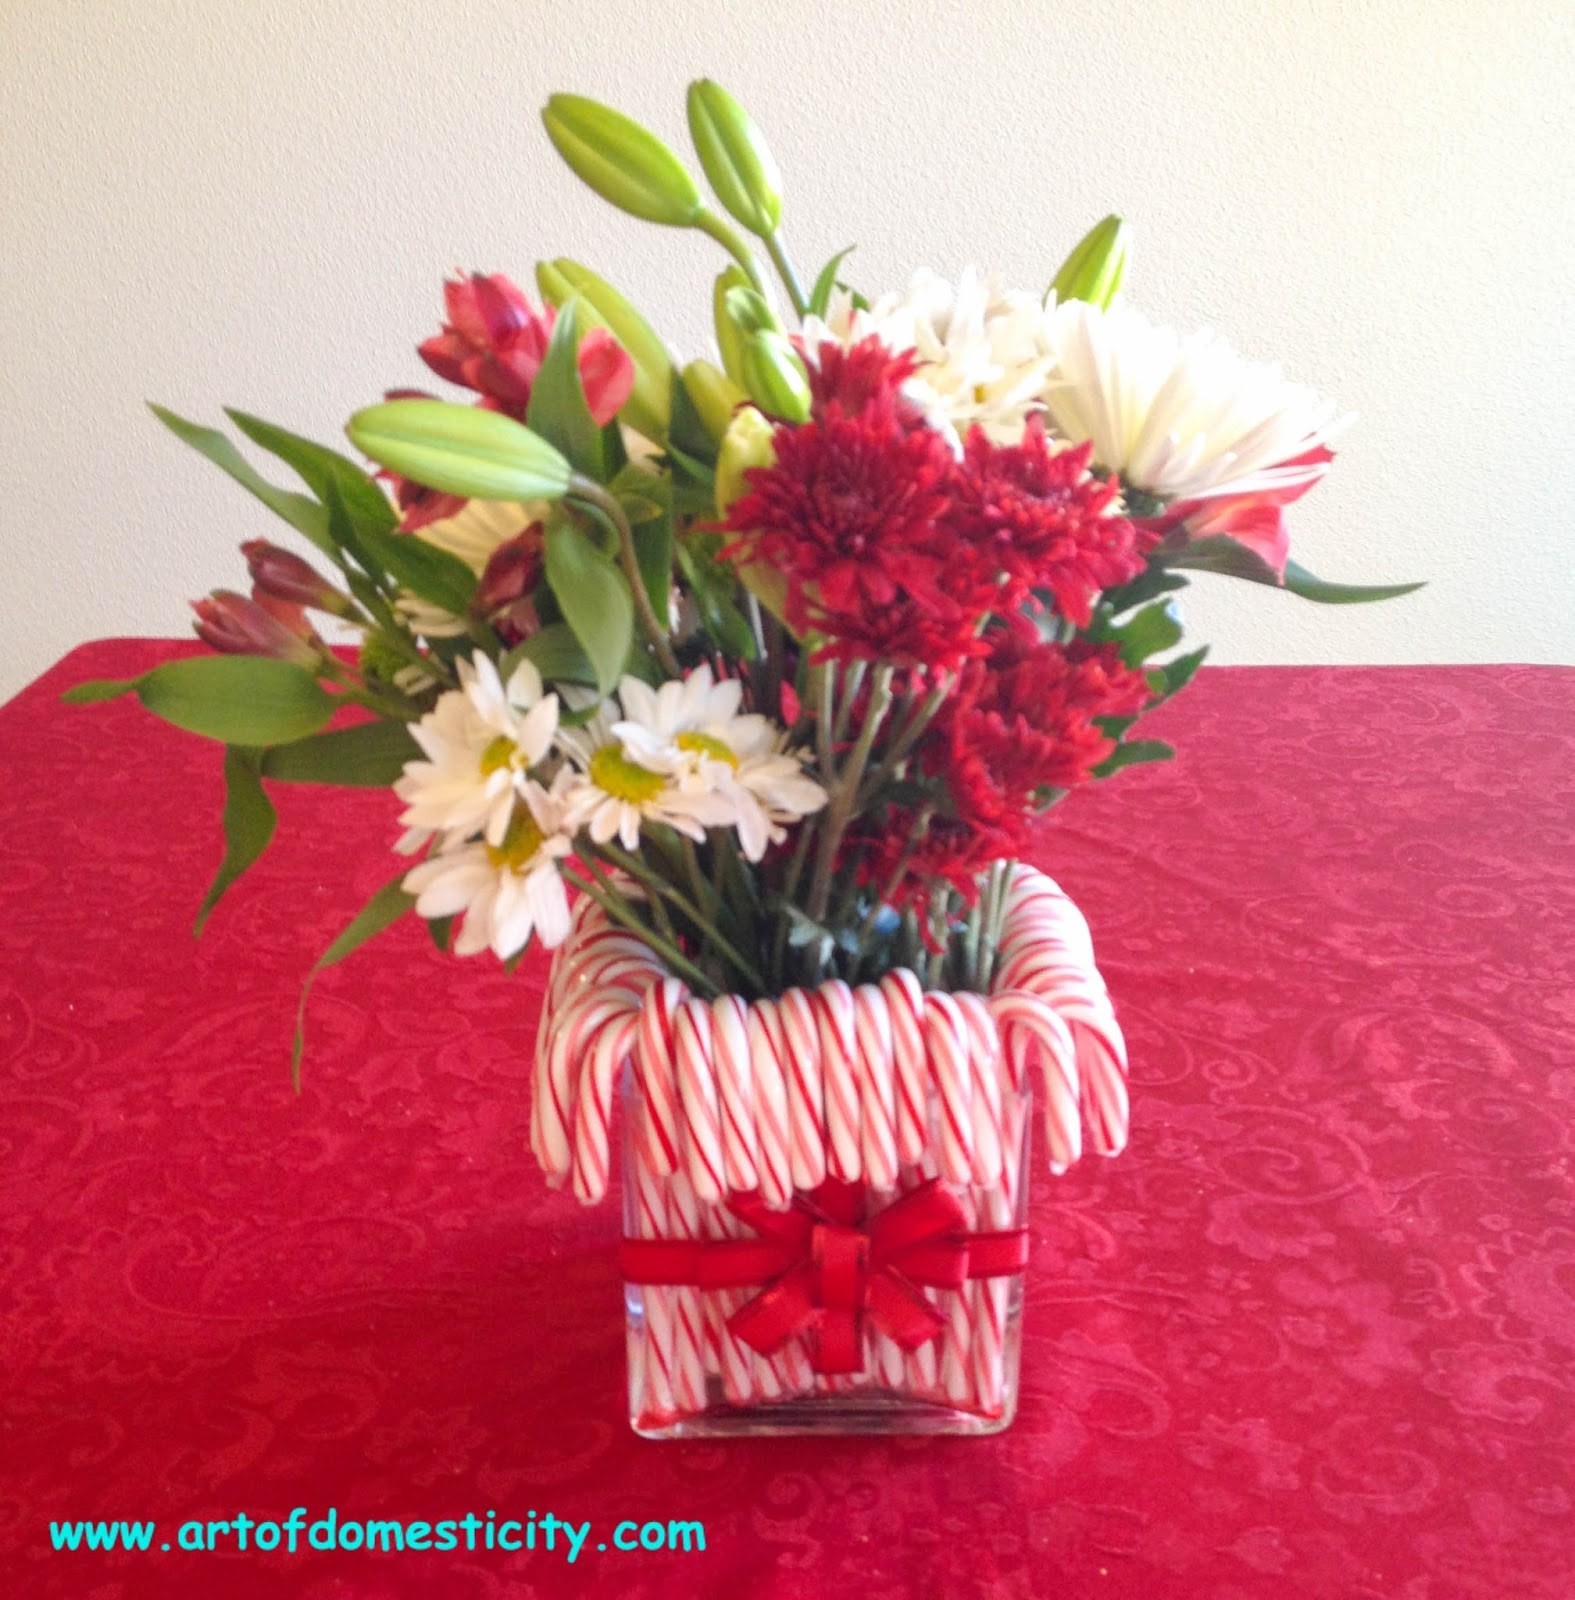 Art of domesticity christmas candy cane centerpiece